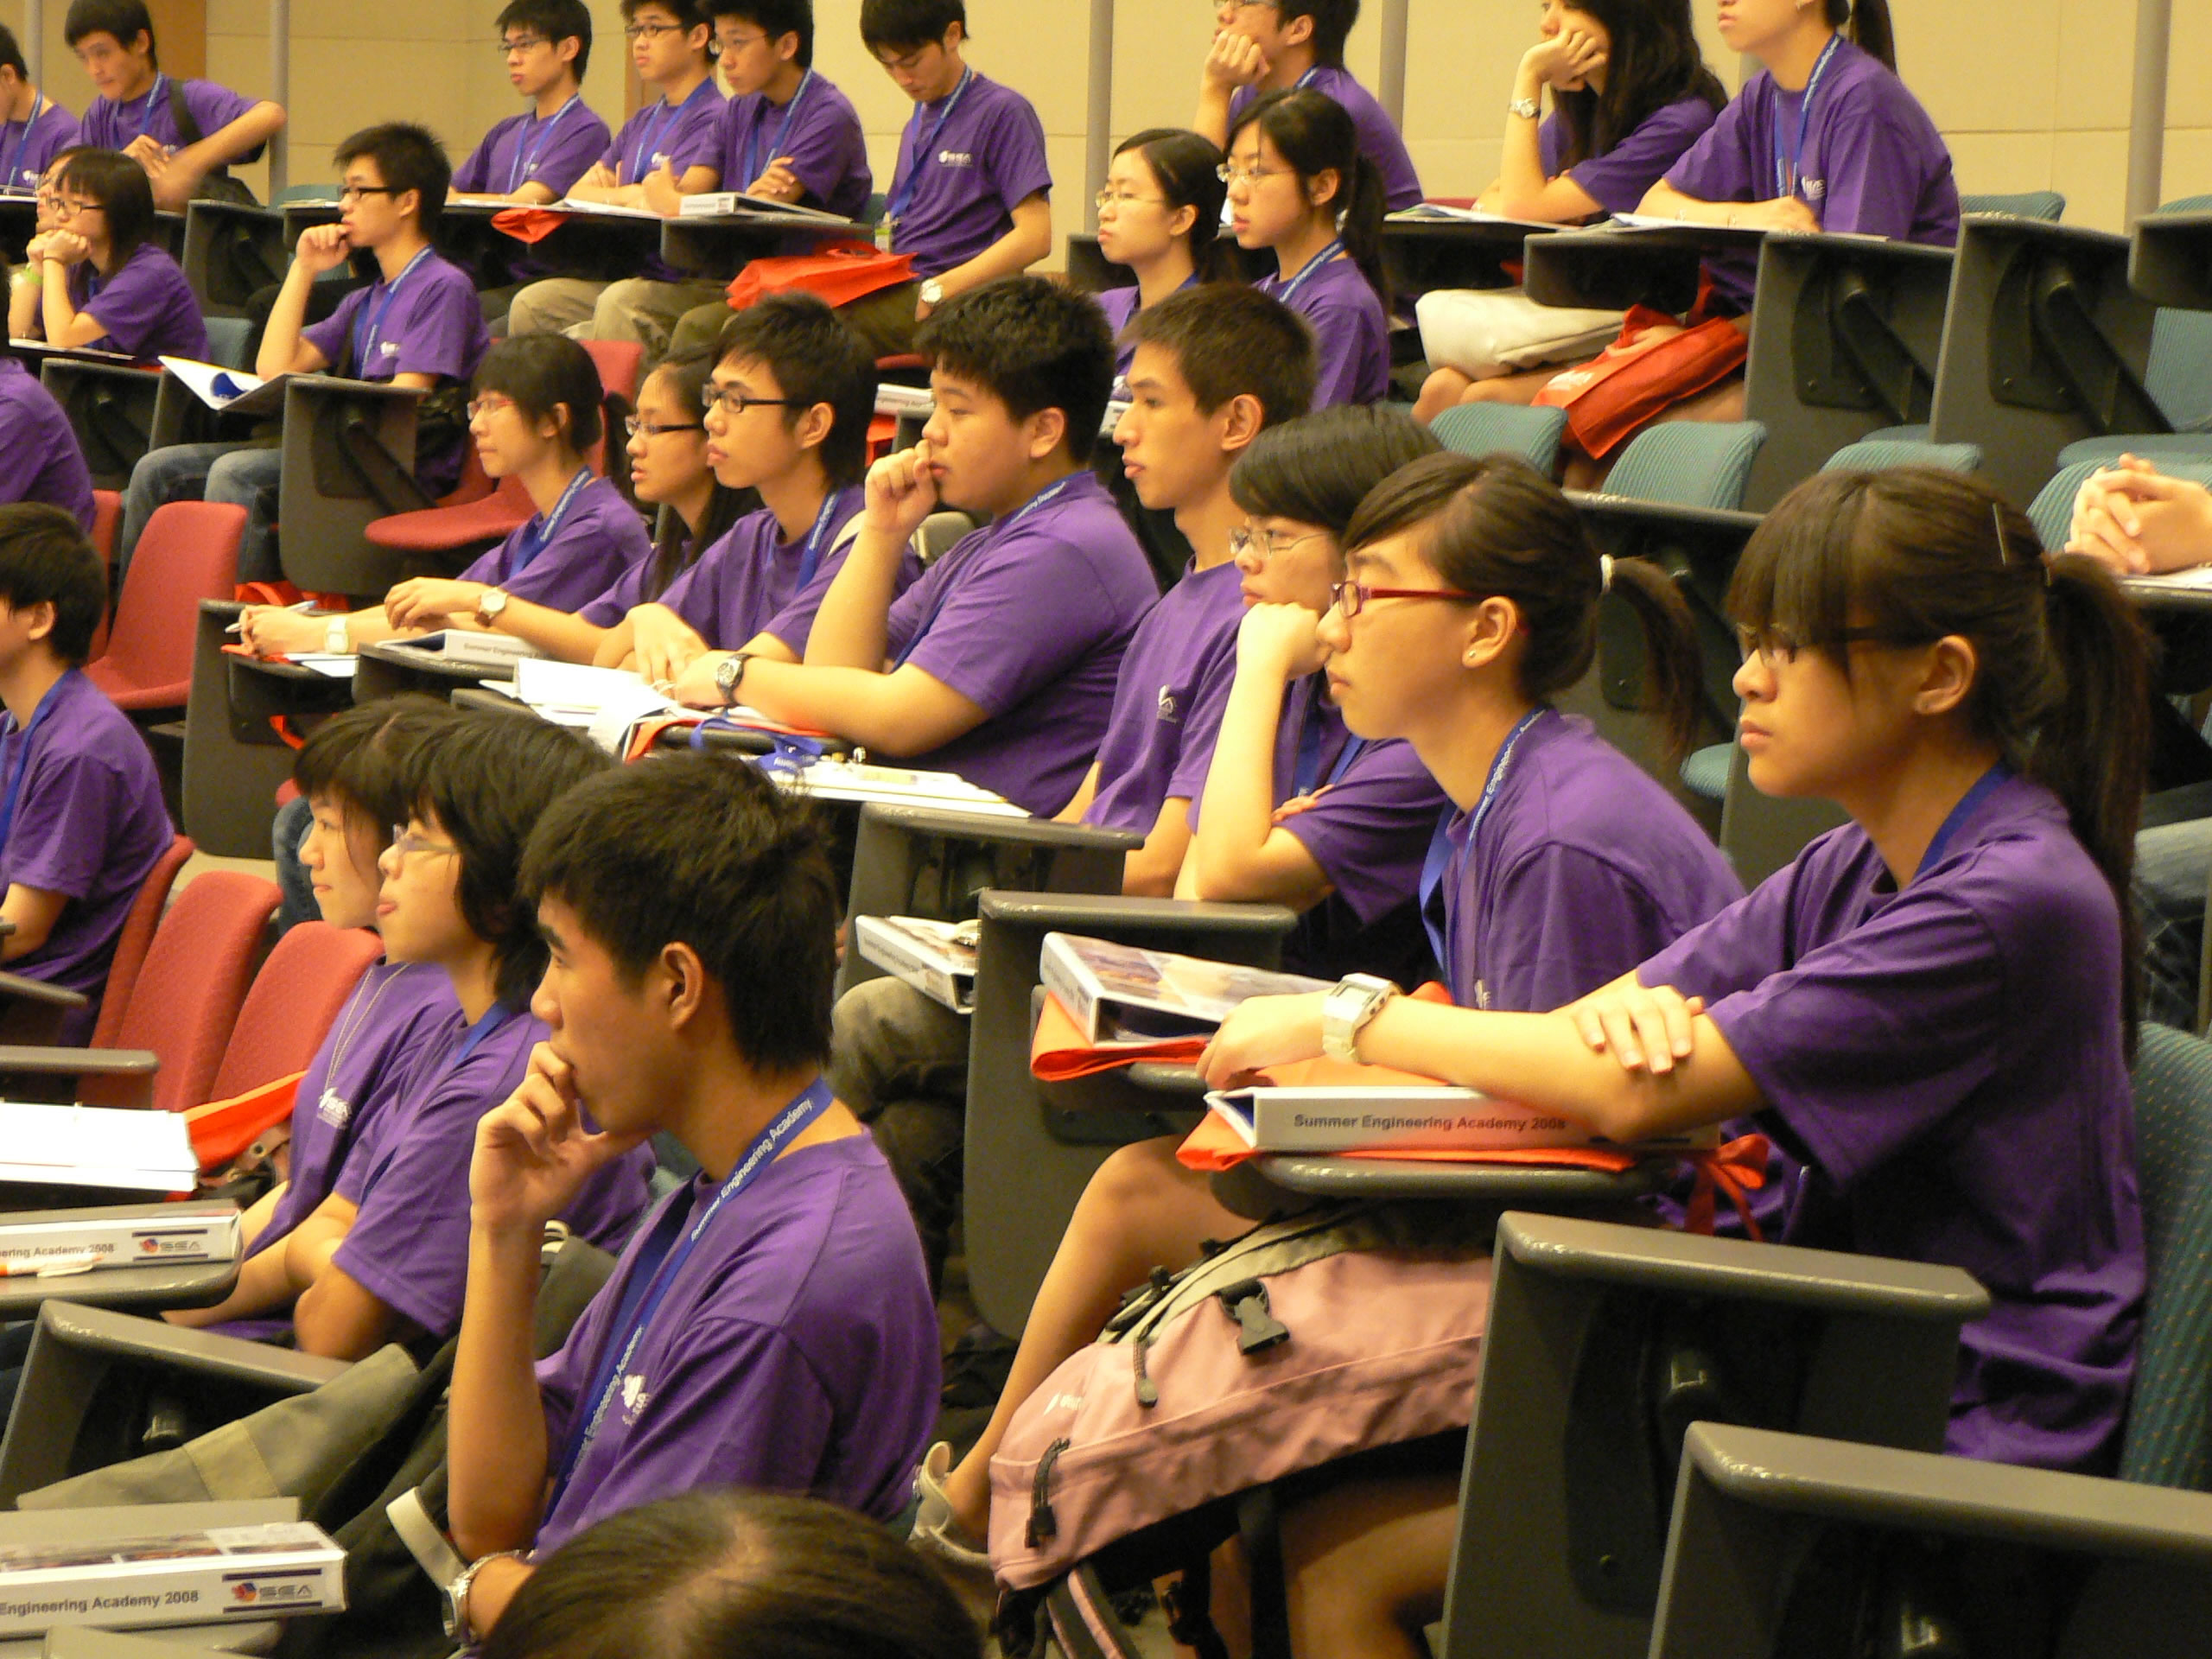 Students receive university-style lectures given by professors from the CUHK Faculty of Engineering